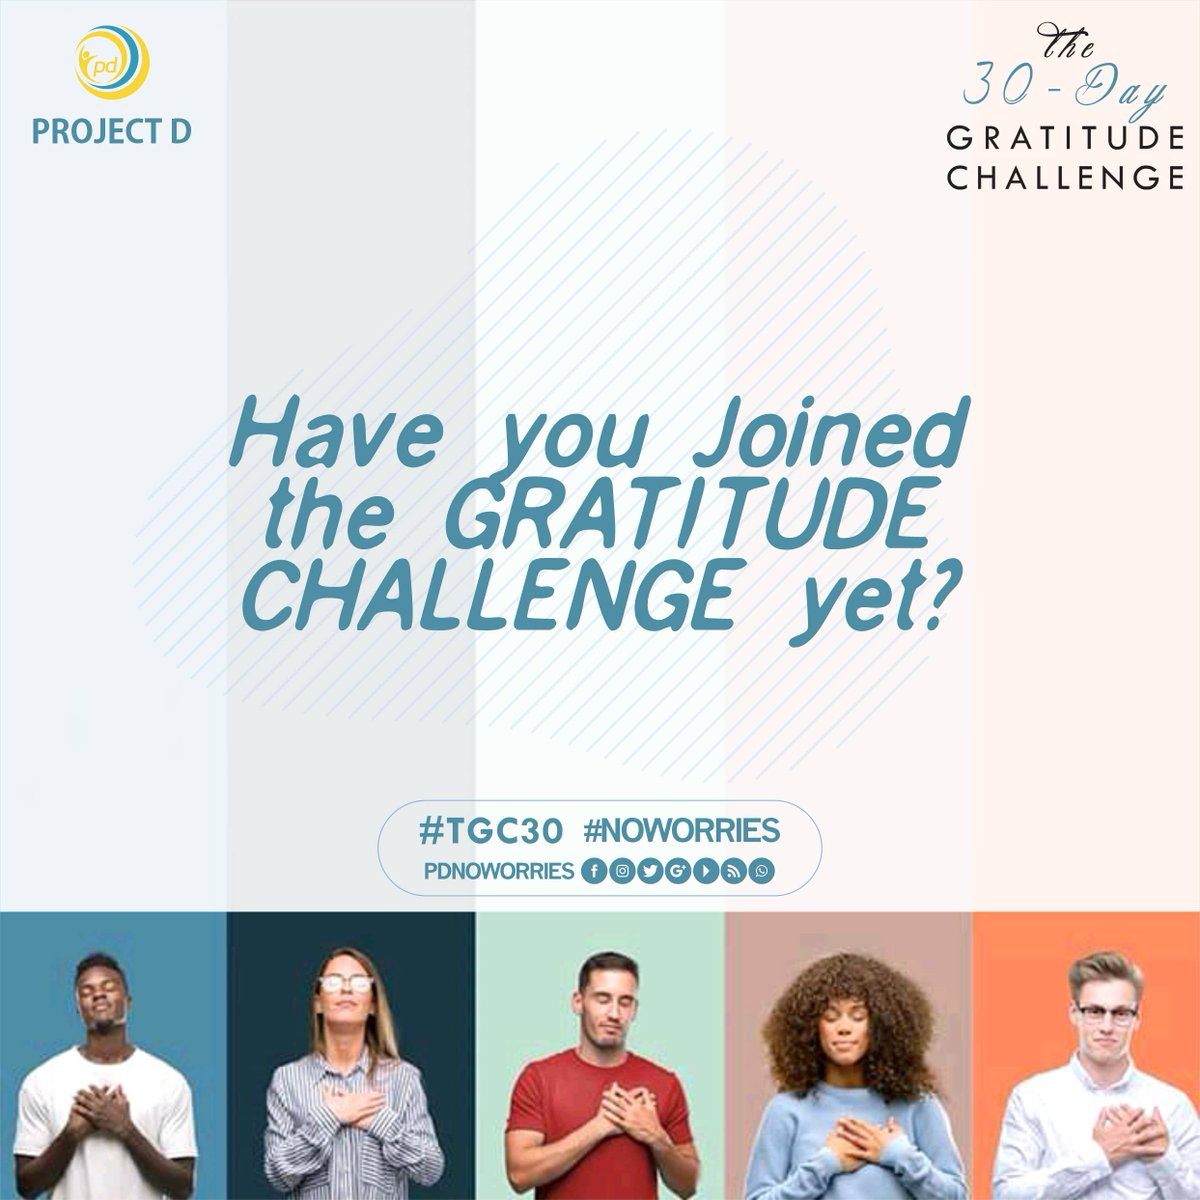 Beginning the year with gratitude is settling for good vibes only 😊🙌🙌  JOIN THE GRATITUDE CHALLENGE Tell a friend who will tell a friend.  #join #tgc30 #gratitude #gratitudechallenge #yearstarter #goodvibes #mentalhealth #notodepression #yestolife #projectd #noworries